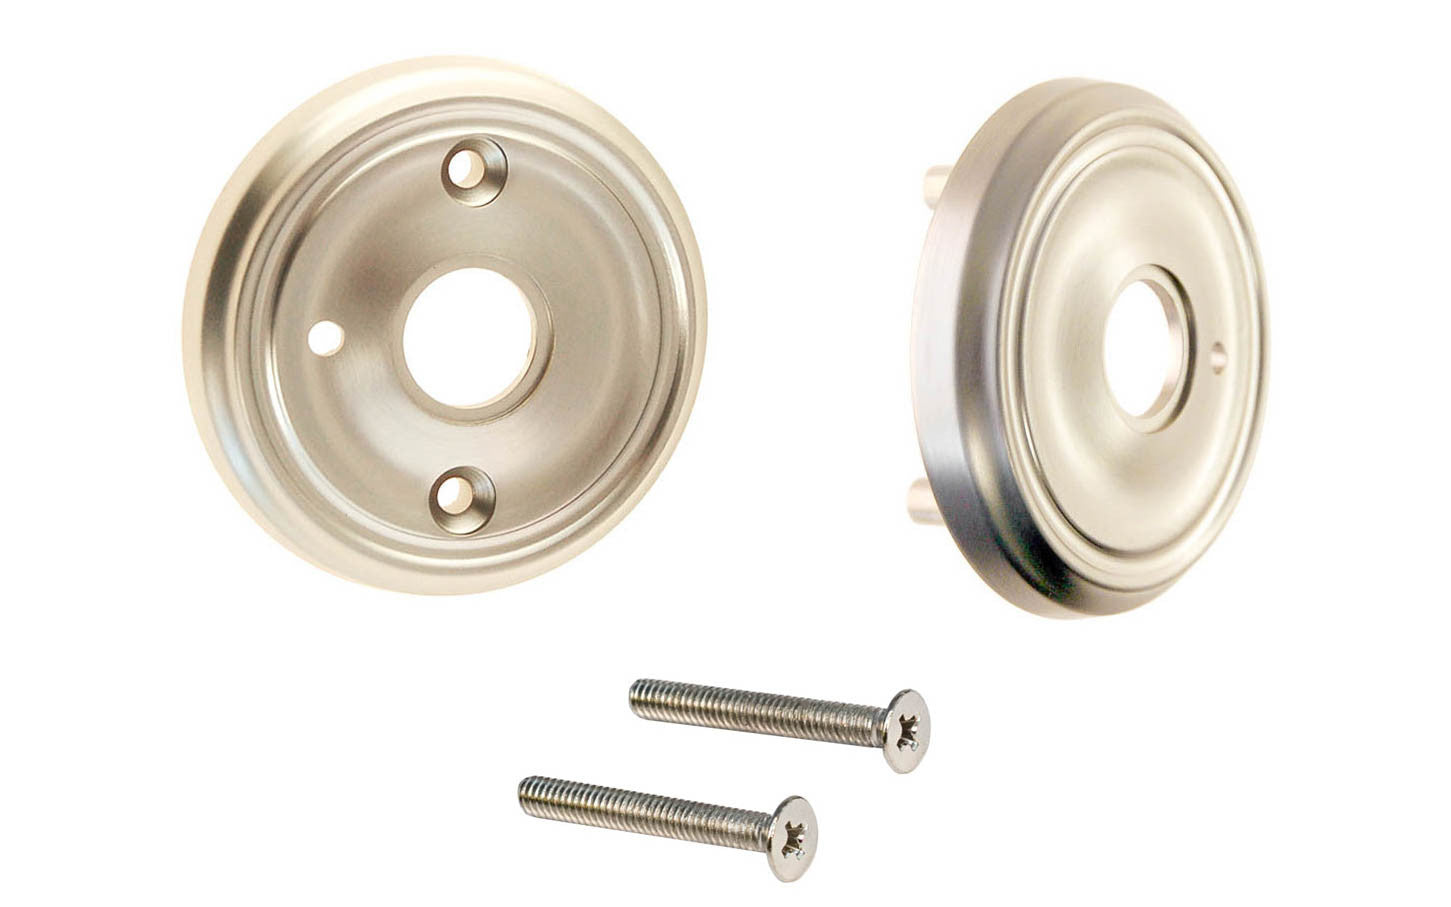 Classic Solid Brass Rosette Set ~ Privacy (Locking) ~ Brushed Nickel Finish